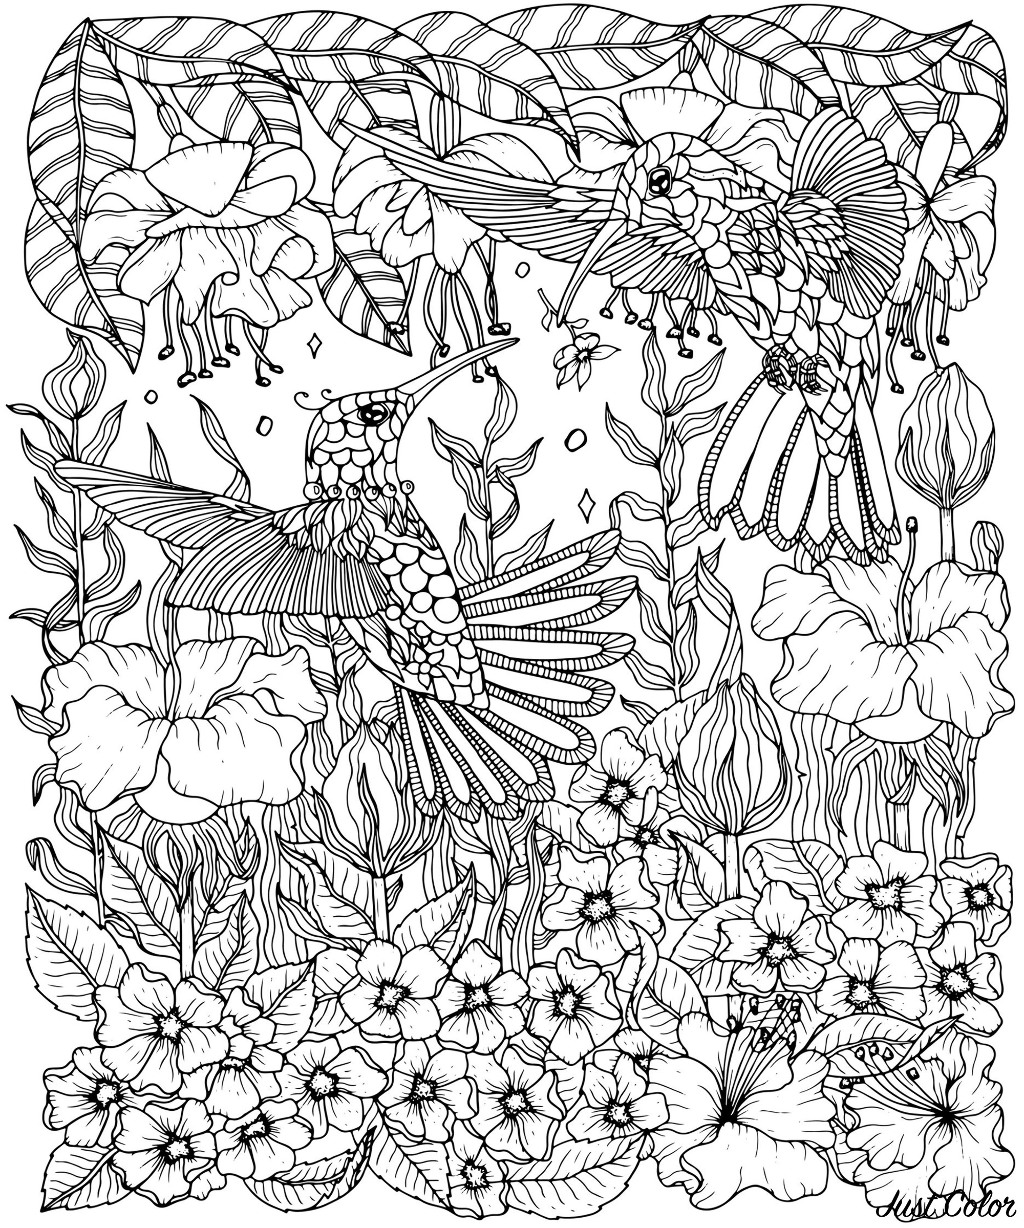 Color these beautiful Hummingbirds with complex and various types of flowers